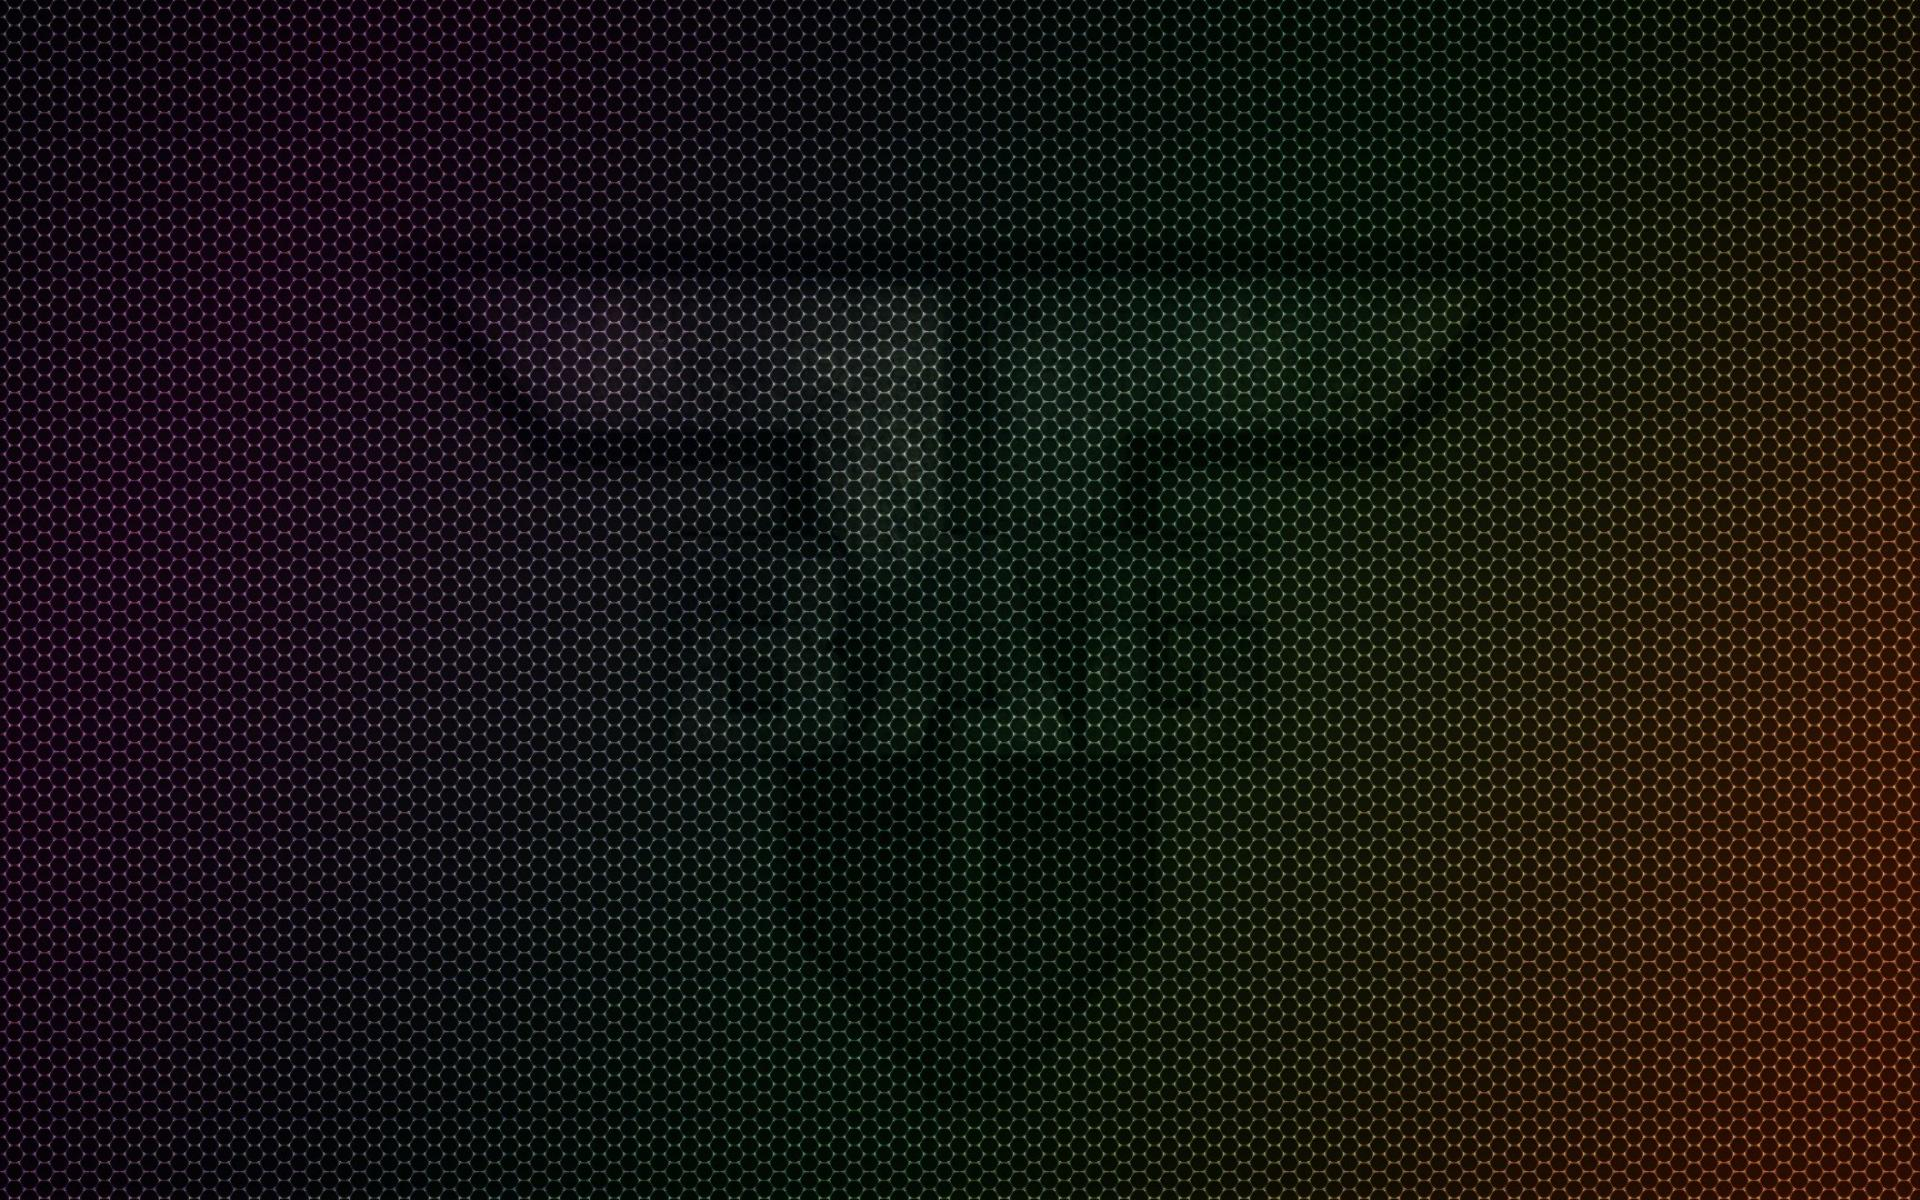 razer wallpapers 1080p